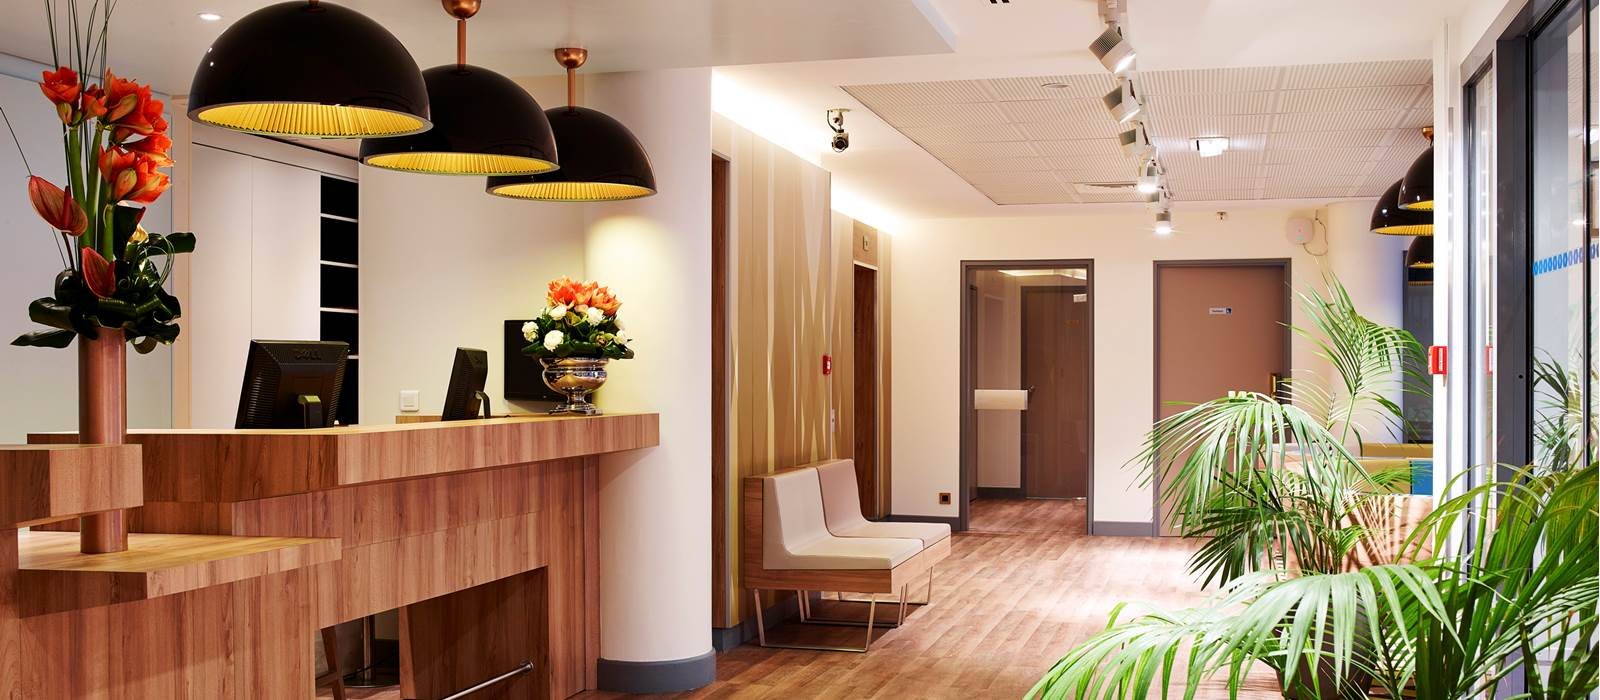 Lobby Hotel Median Paris Porte de Versailles